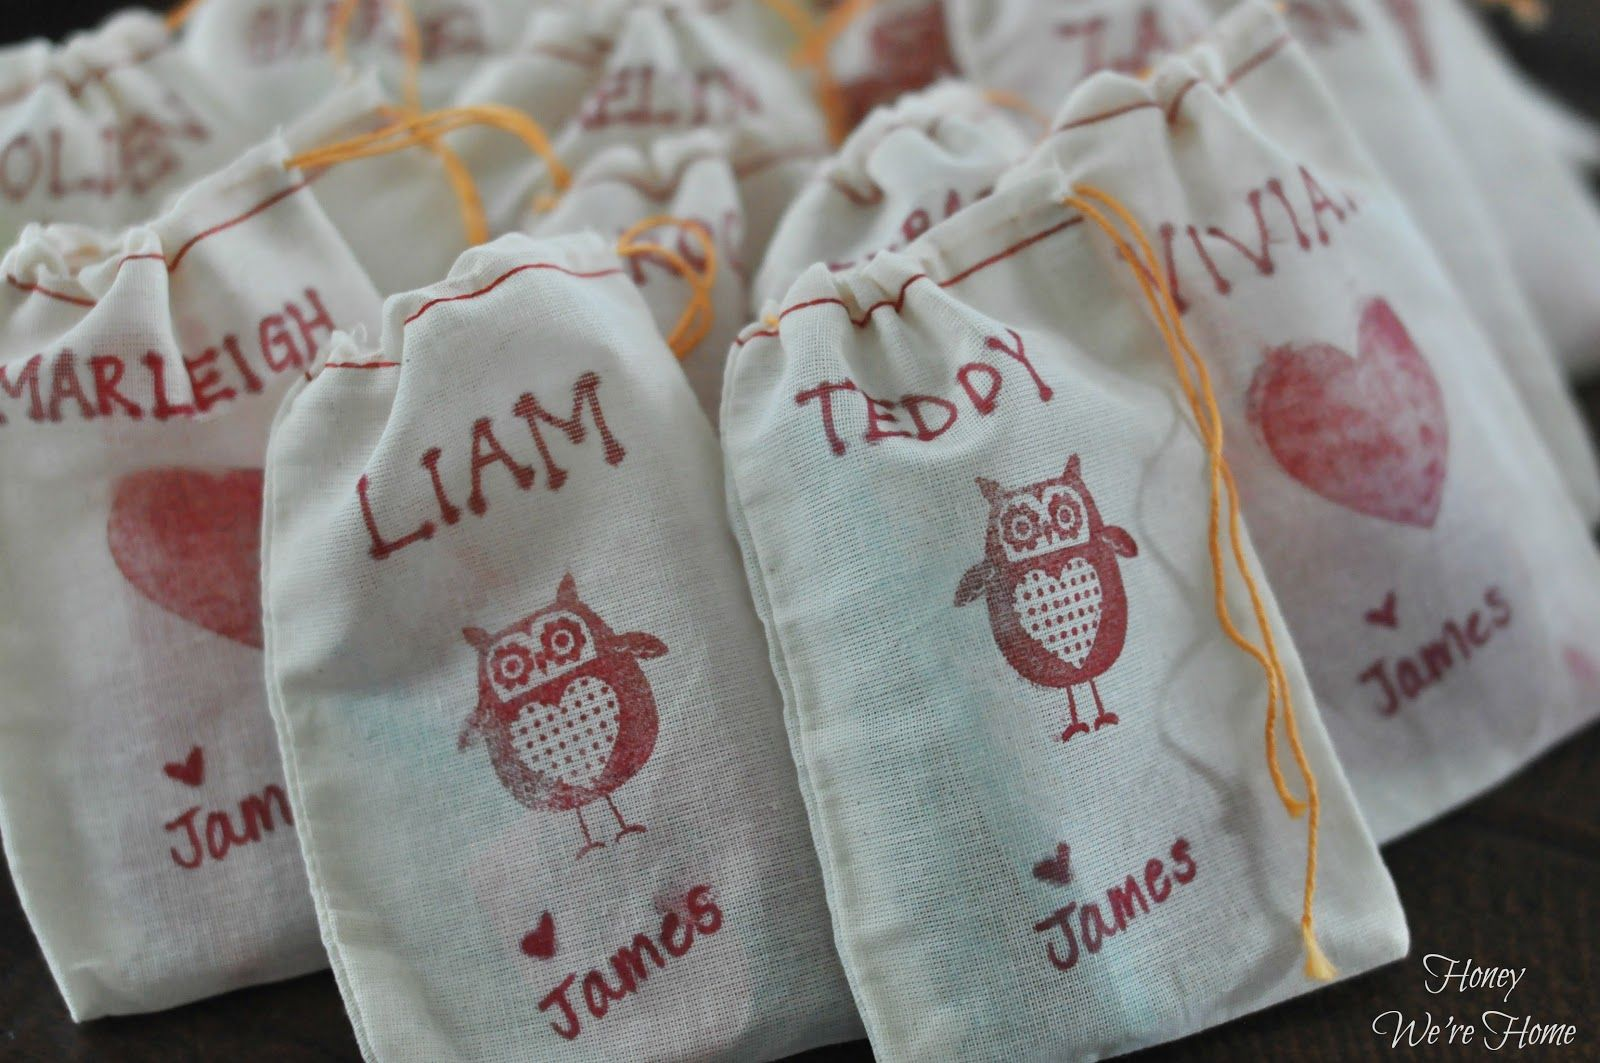 Personalized Gift Bags (party favor bags or Valentine's treat bags!)